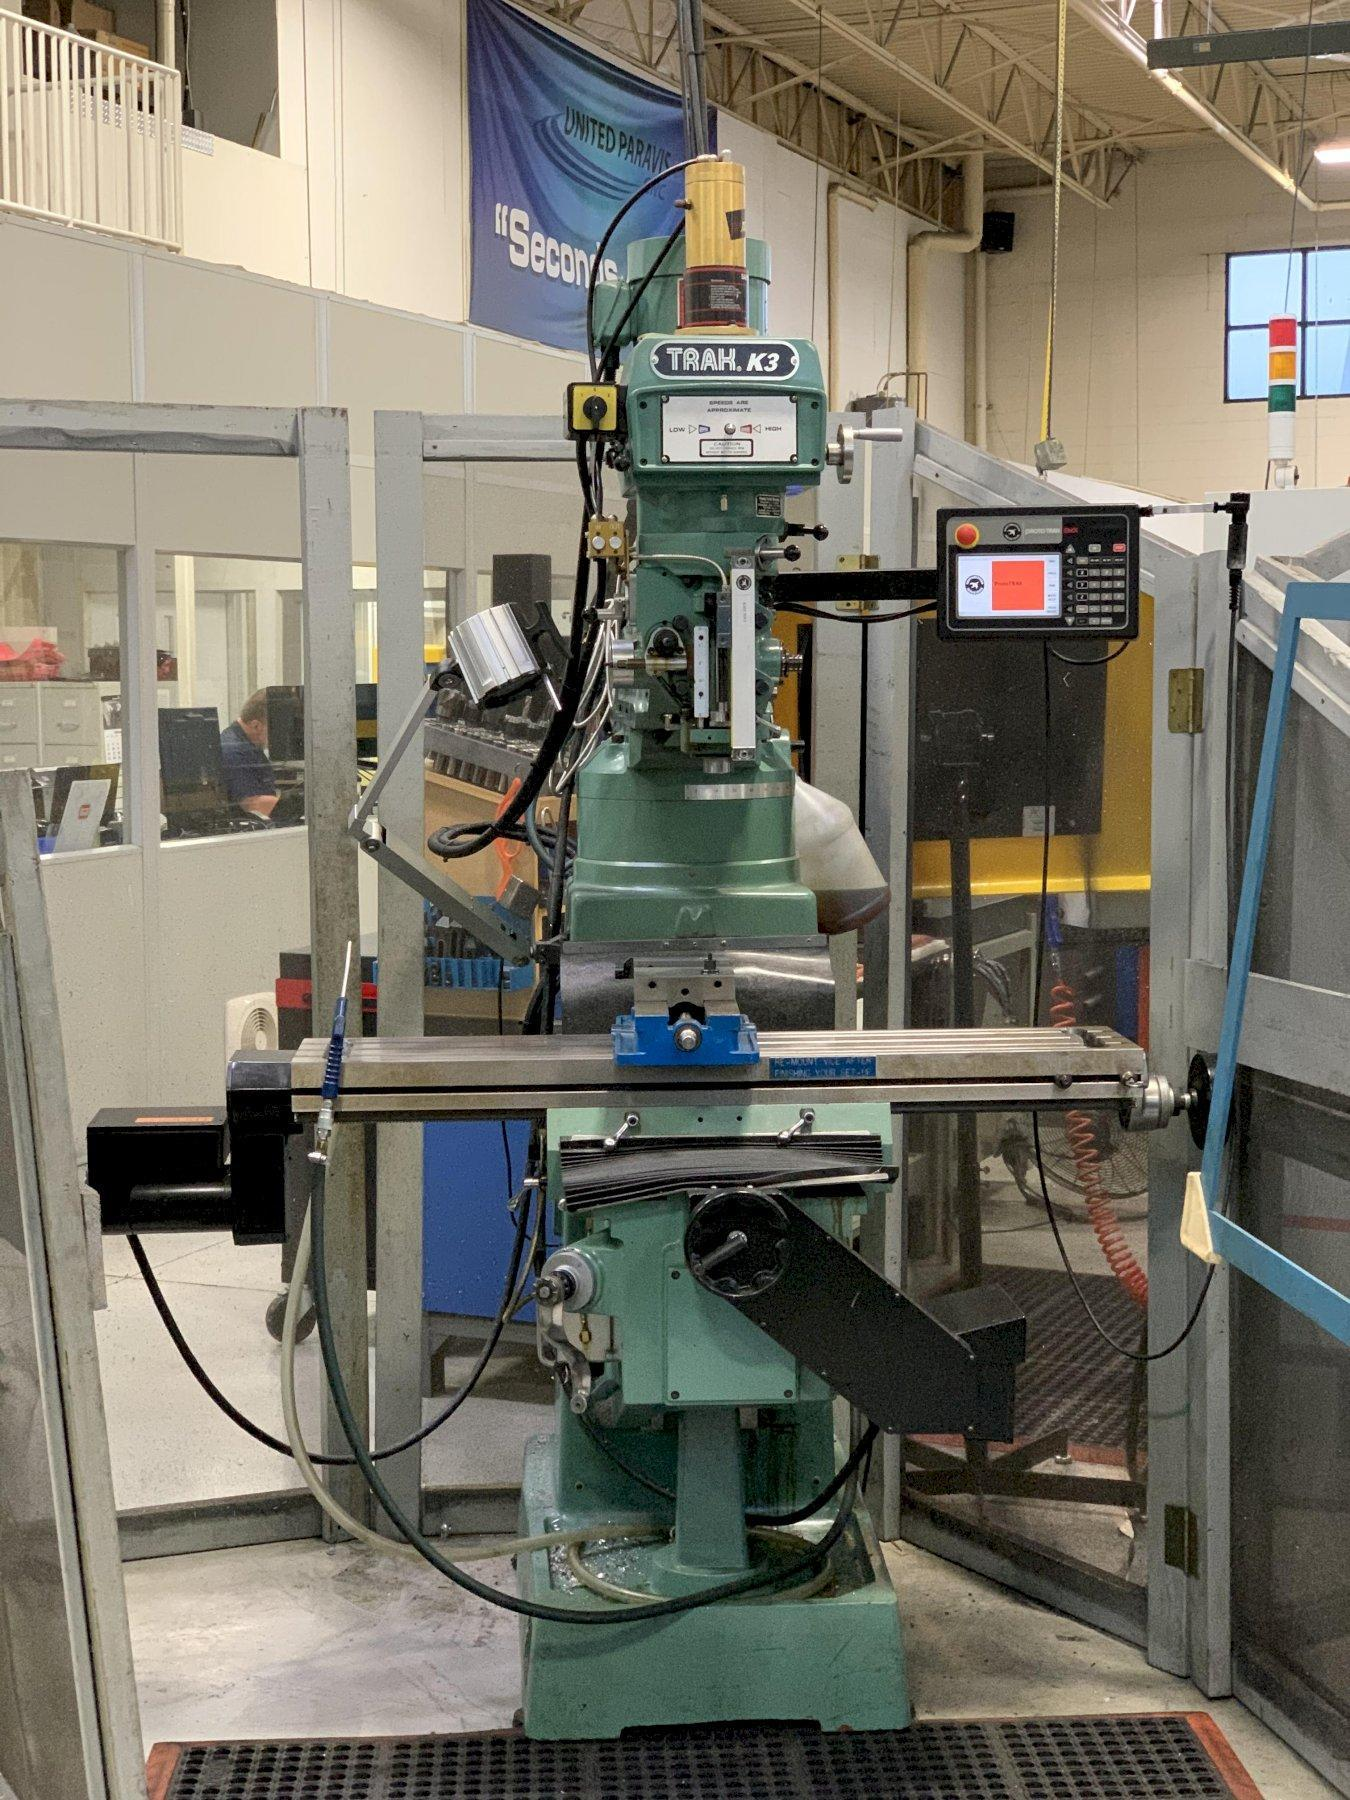 "Southwestern Industries Trak K3 CNC Mill, Prototrak EMX, 32""/16""/16""/15"" Travels, 4200 RPM, R8, Power Draw Bar, (2) Axis CNC/(3) Axis DRO, Scale on Quill, 2012 (2 Avail)